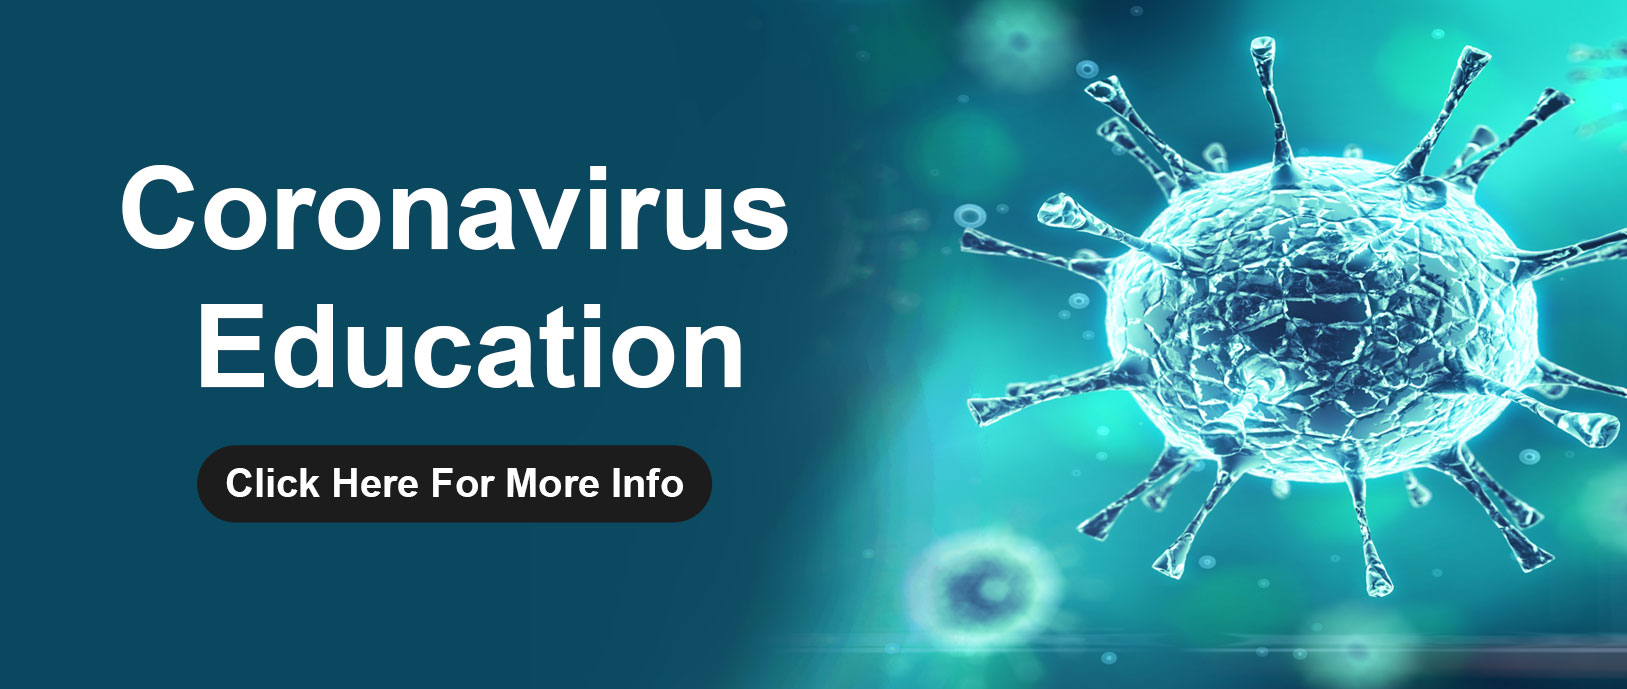 Coronavirus Education. Click here for more information.